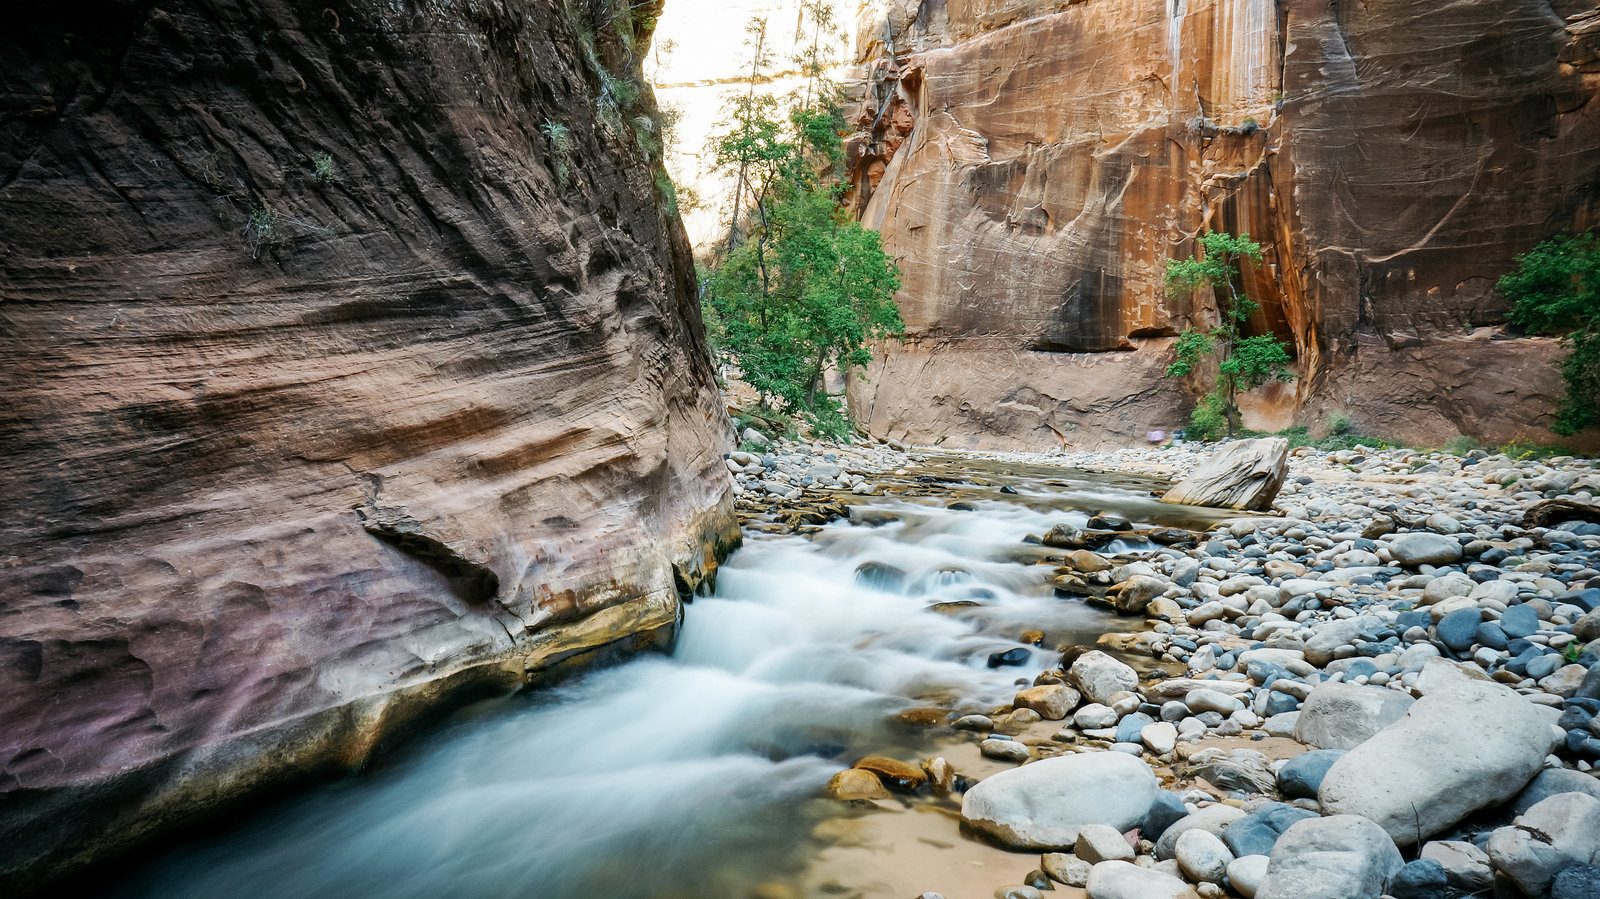 Sasha_Reiko_Photography_Travel_Utah_Arches_Canyon_Lands_Zion_Grand_Canyon-54